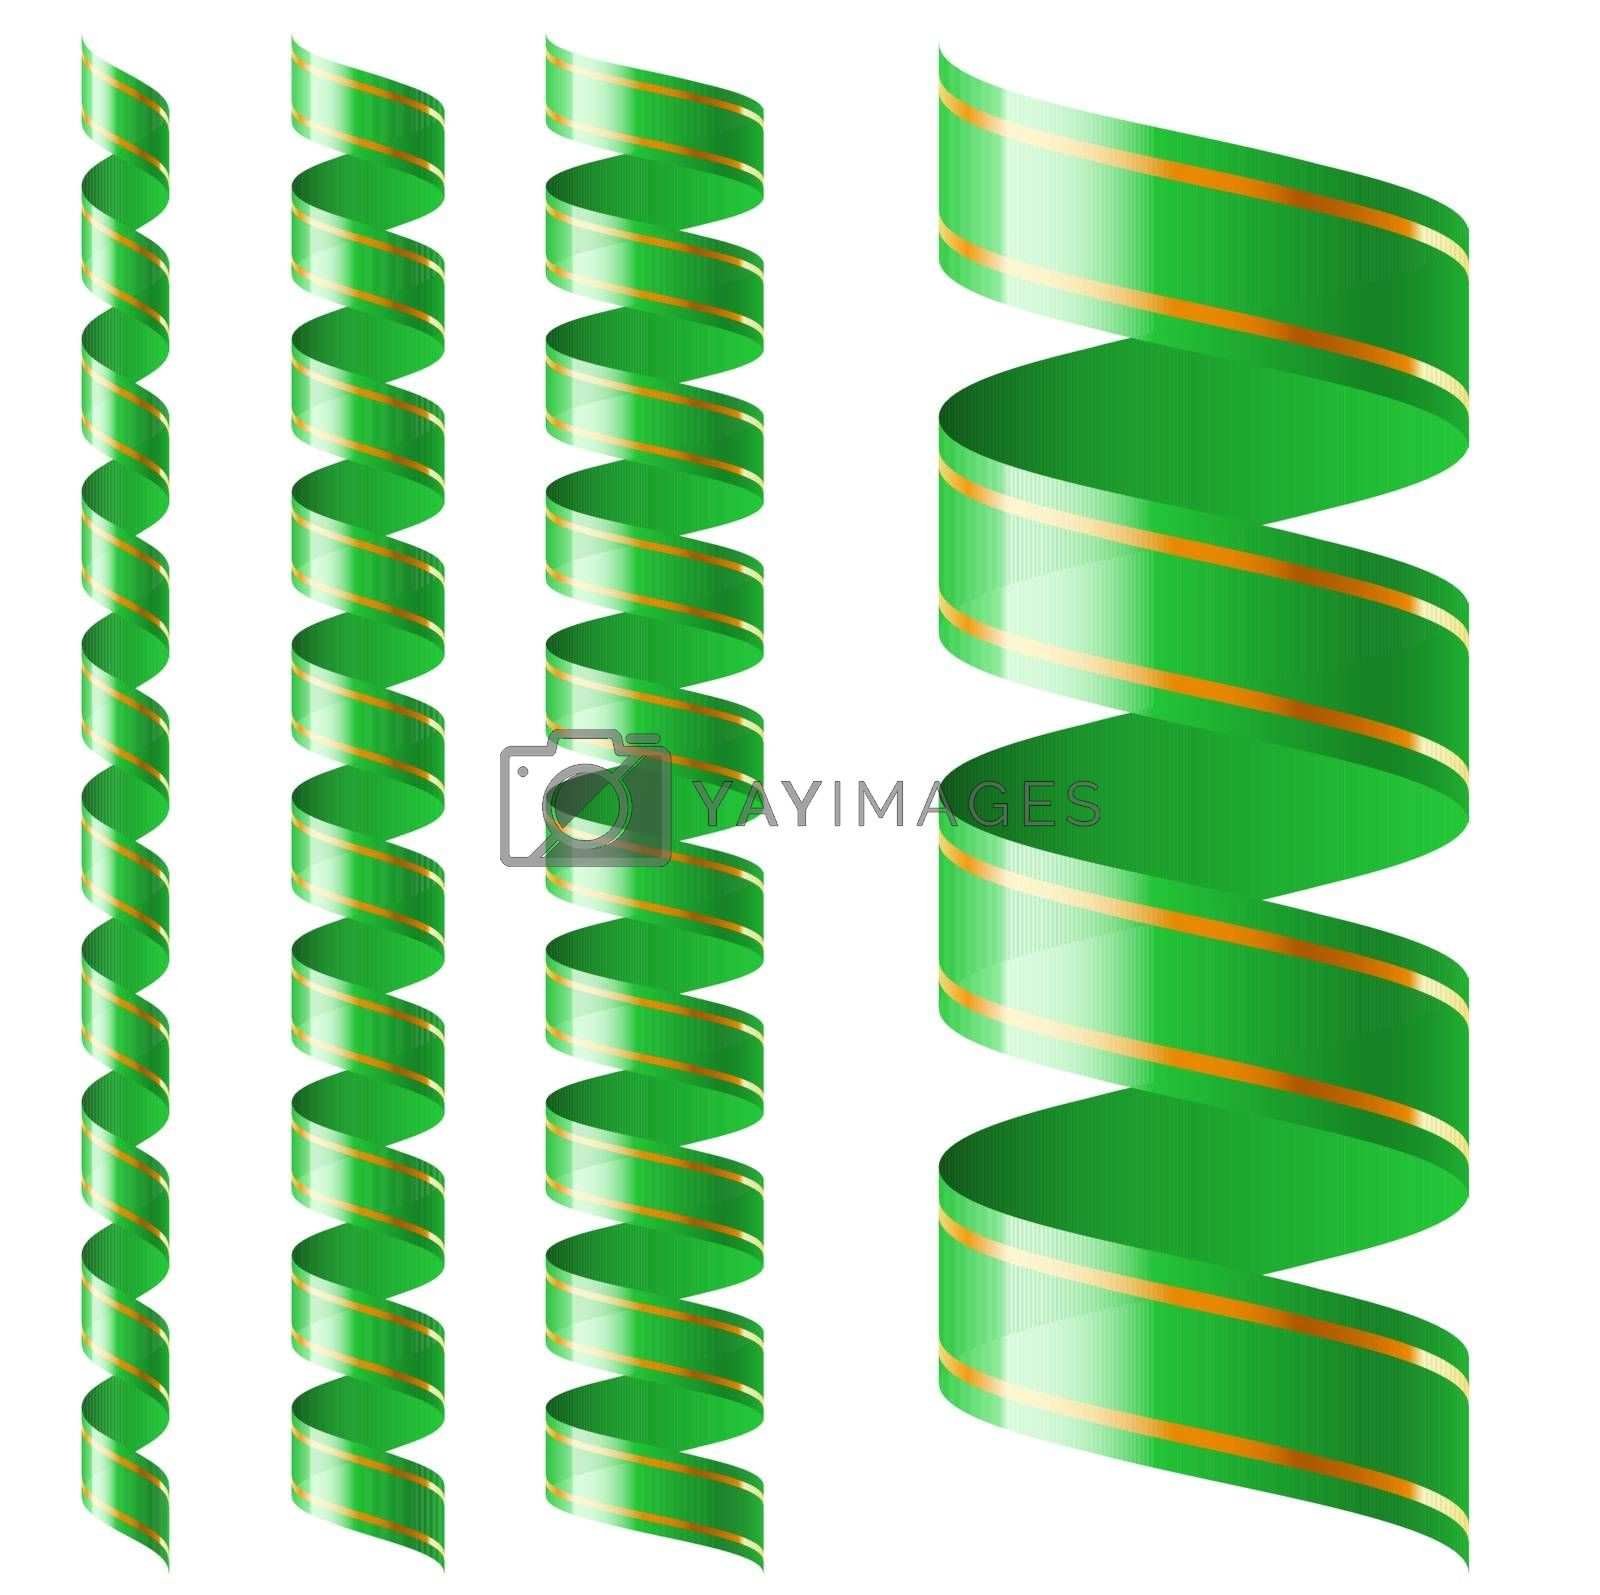 Vertical green ribbon of different sizes on a white background